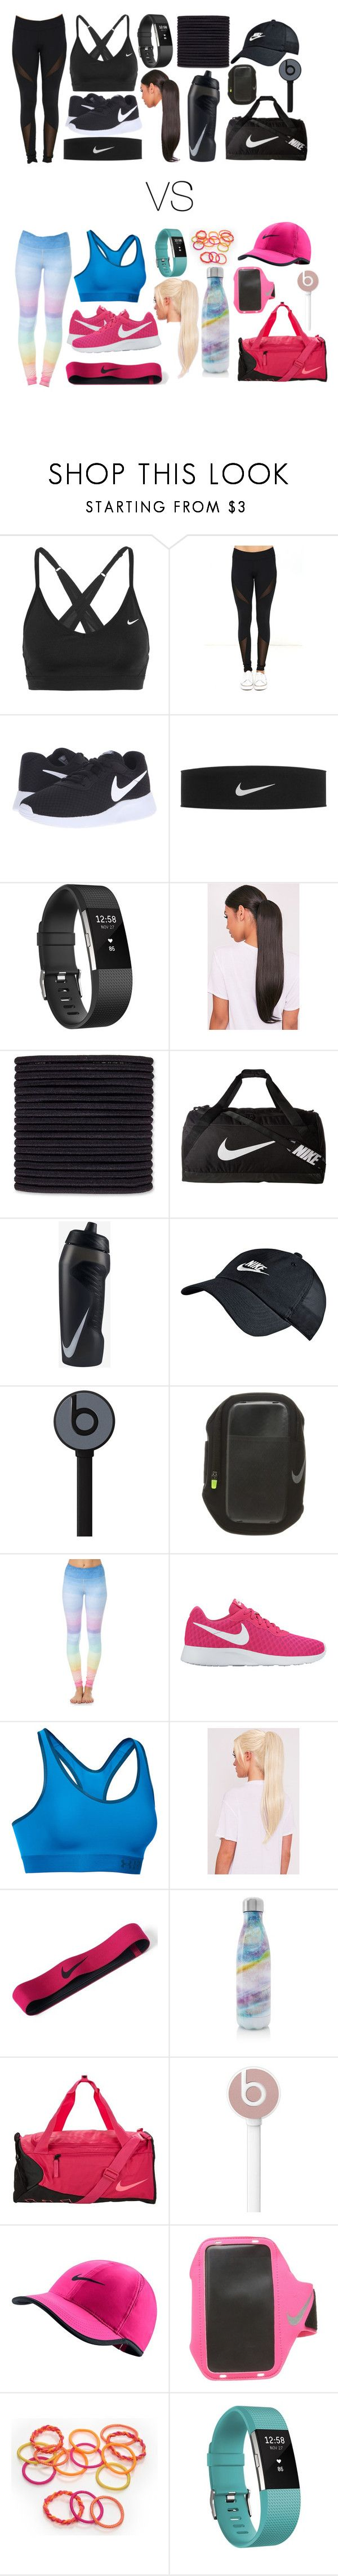 """""""two kinds of people at the gym"""" by gatelyhawkins ❤ liked on Polyvore featuring NIKE, Dance & Marvel, Fitbit, scunci, Beats by Dr. Dre, Flexi Lexi, Under Armour and S'well"""